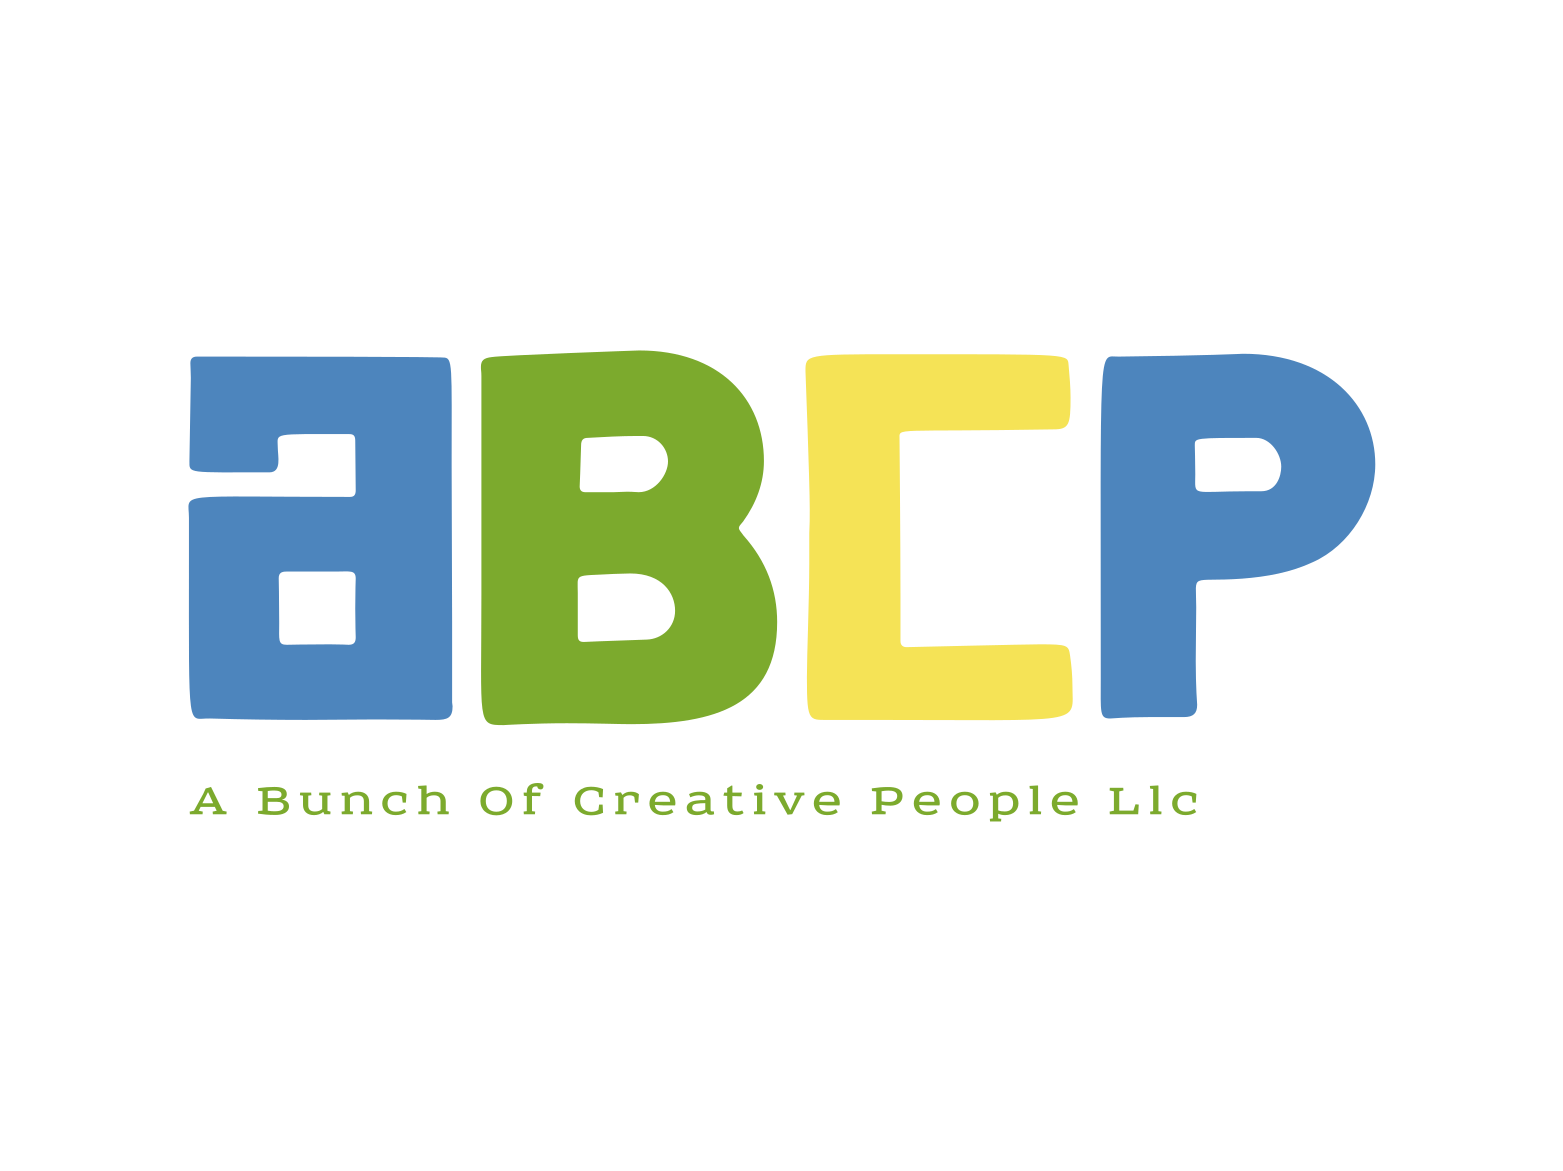 A Bunch of Creative People